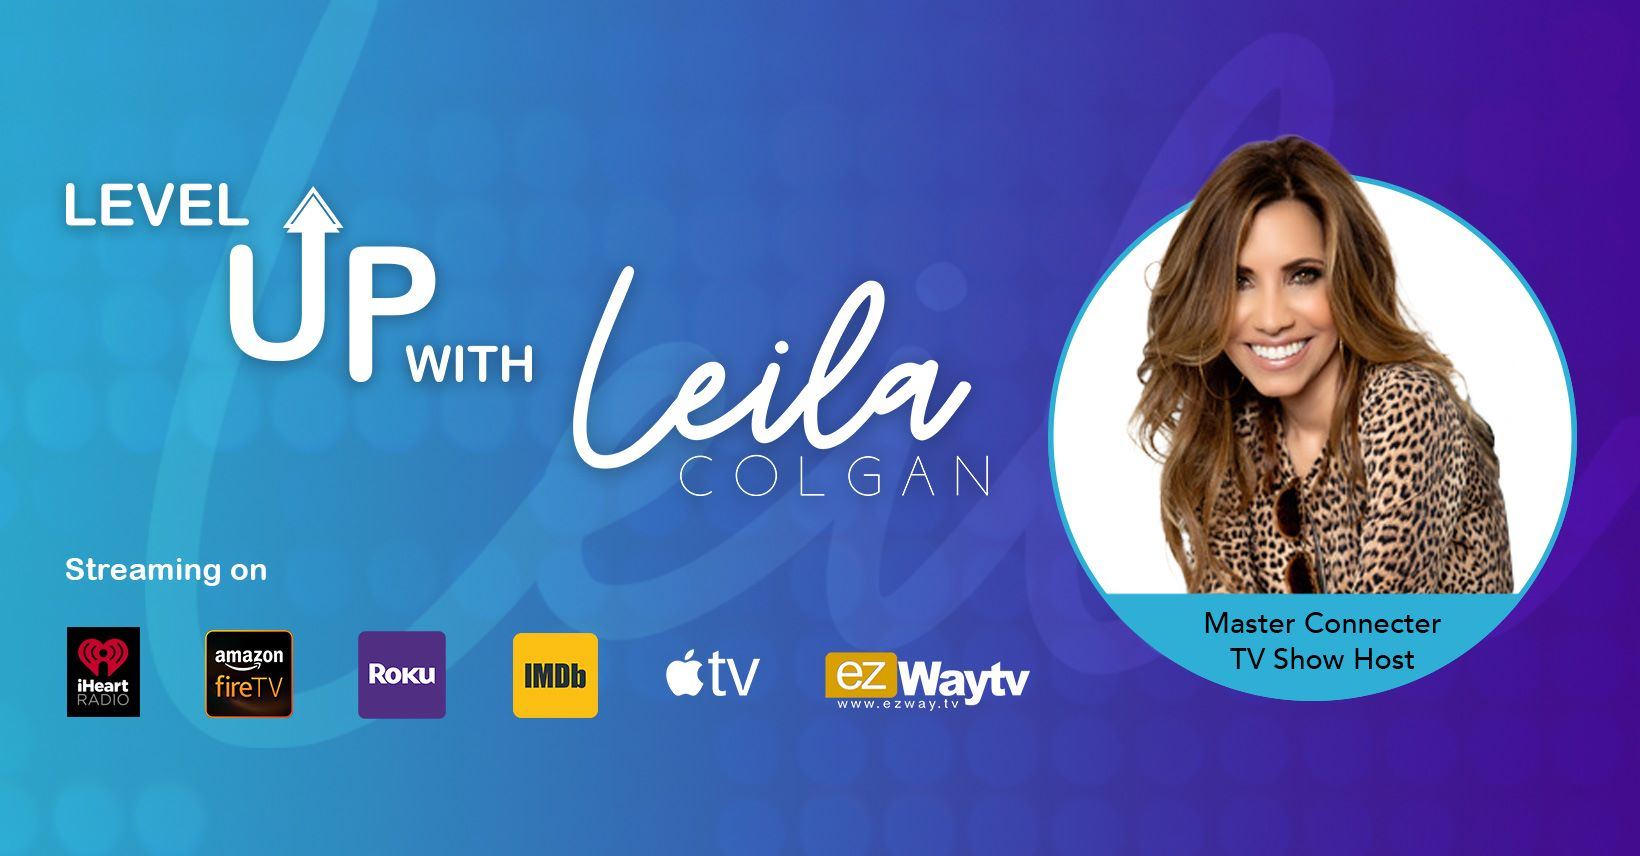 Level Up with Leila Colgan